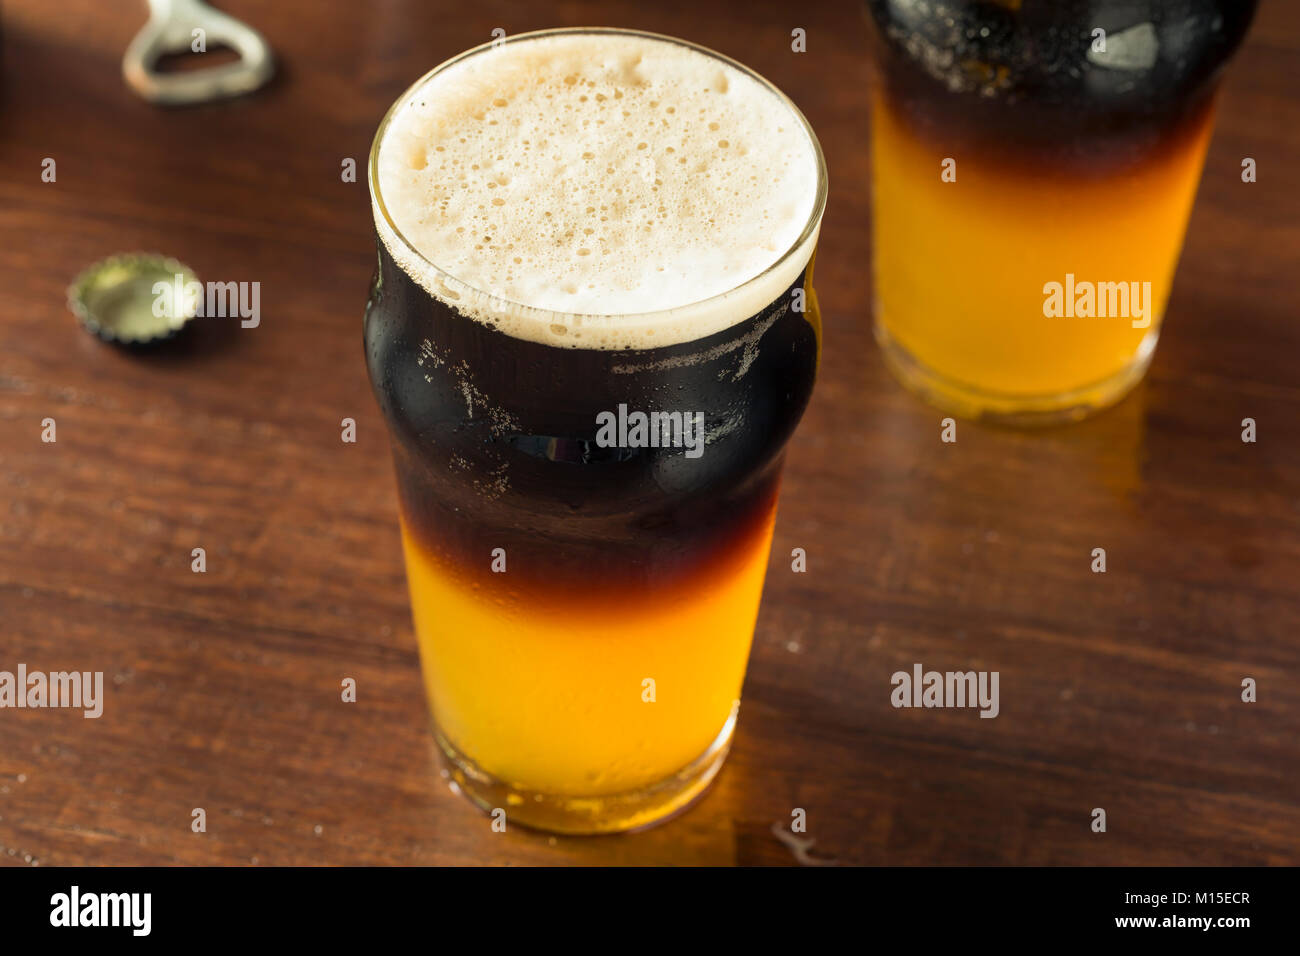 Irish Layered Black and Tan Beer with Lager and Stought - Stock Image